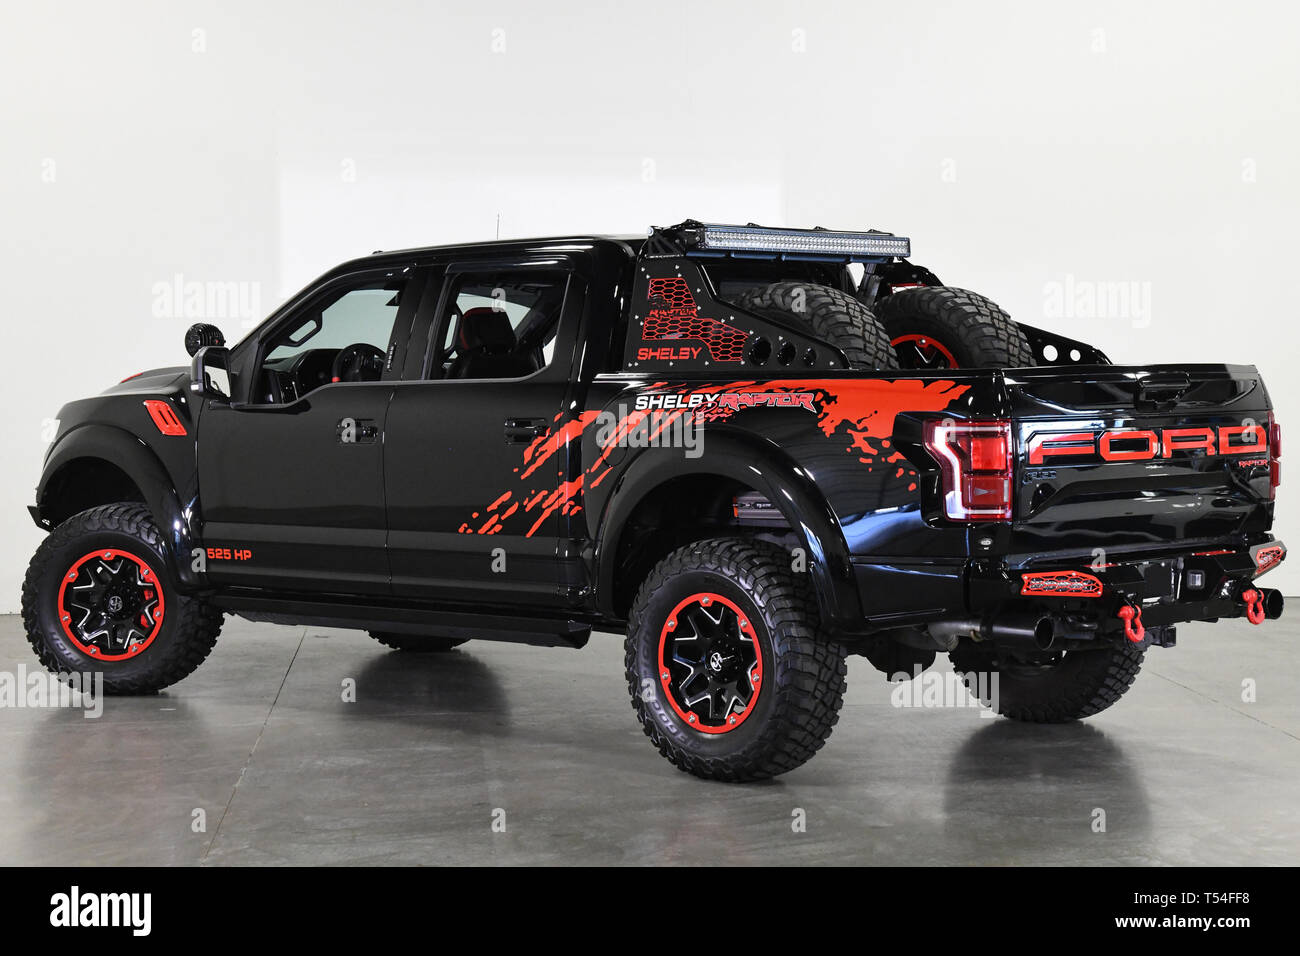 https www alamy com april 20 2019 2018 ford f 150 shelby raptor baja 525hp turbo fox 3 2018 shelby baha raptor we have 7 pages of added shelby and upgrade options call for a copy sonny 972 523 9797 shelby baja raptor 117460 additional installed upgrades 15357 full ford and shelby warranty one owner certified baja option group 525 hp 610 fpt performance upgrade option list to ecoboost turbo shelby tuned performance exhaust dual intake baja hood fox 3 raptor stage 2 shock system 18 baja wheels bfg muds 35125018 with two full spares xl power steps front and rear shelby bumpers led led leds 40 cur image244118428 html